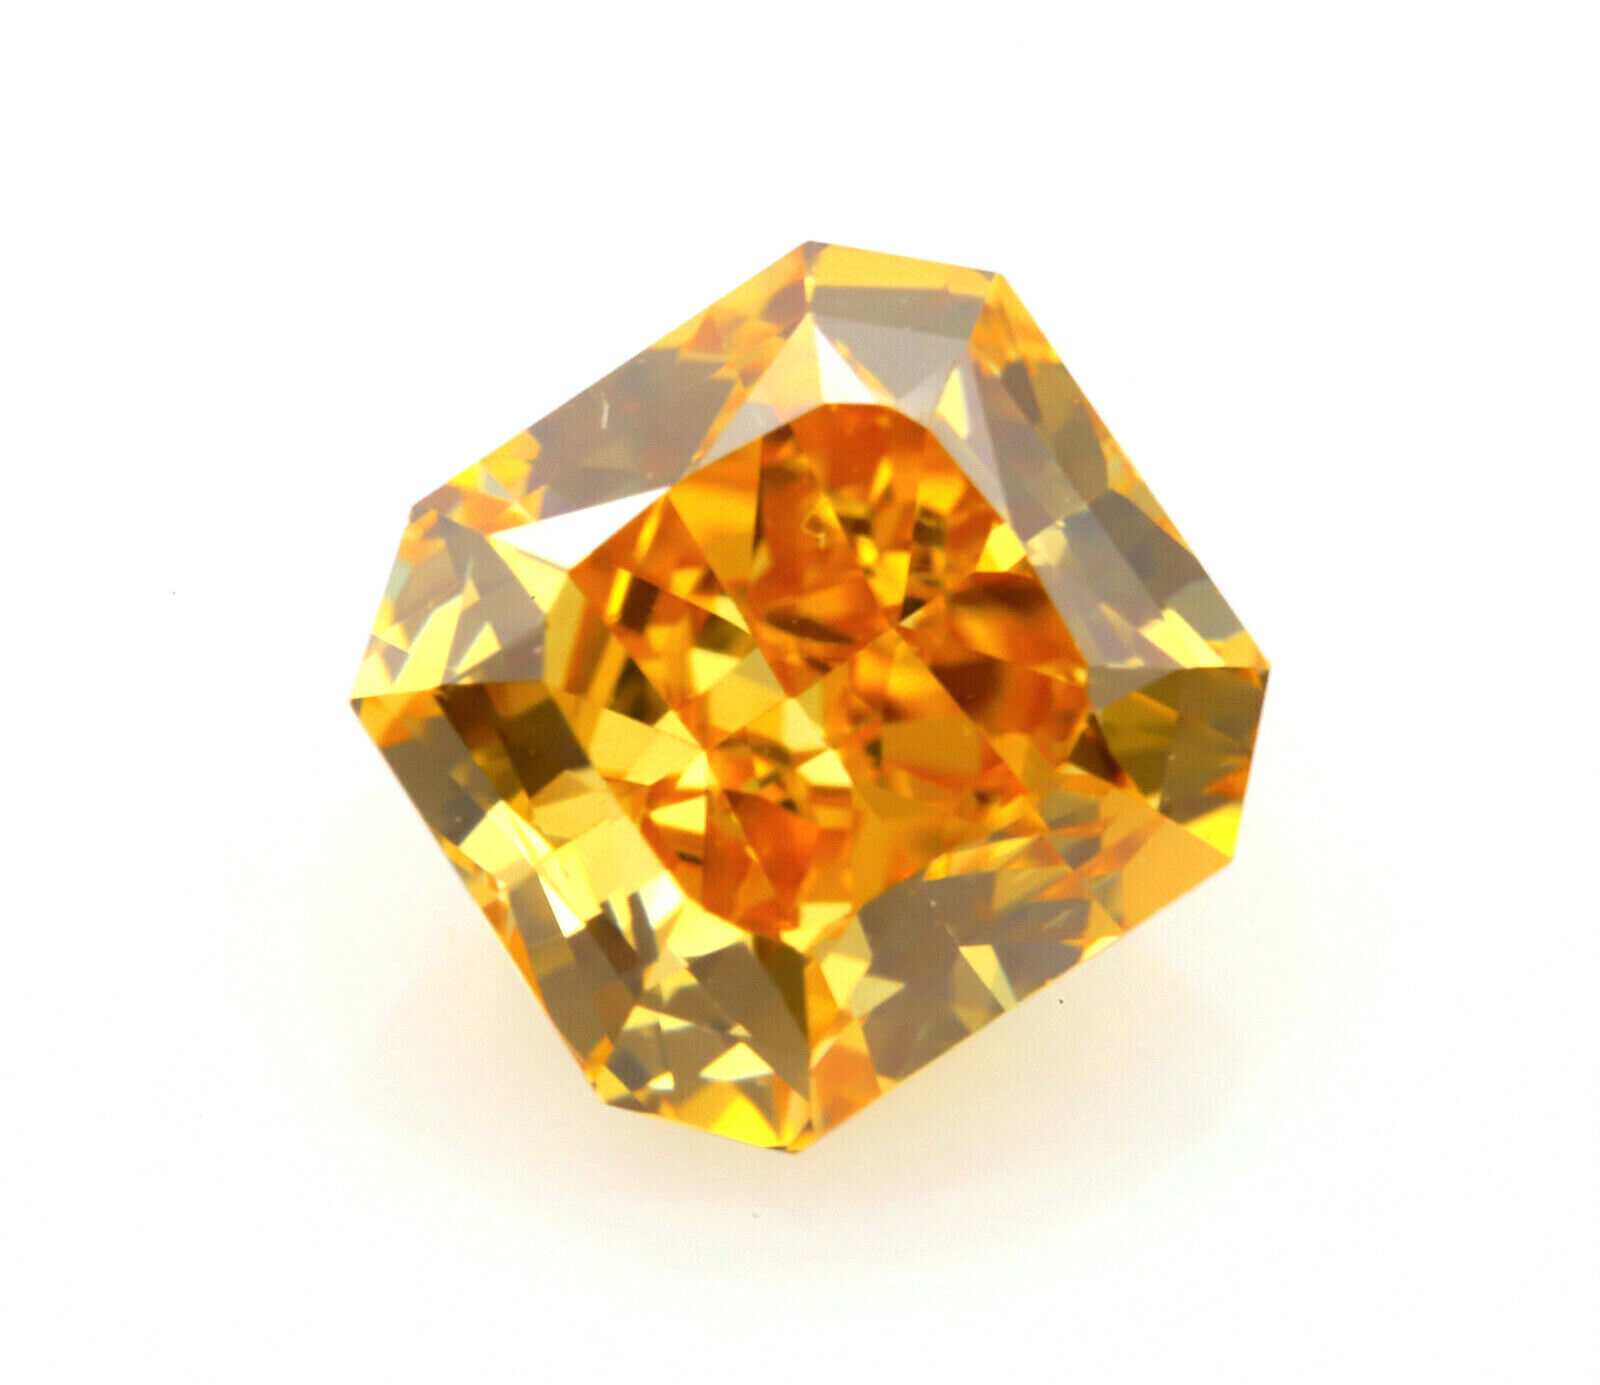 Zimi Diamond VVS2 -  0.59ct Natural Loose Fancy Vivid Orange Yellow Diamond GIA